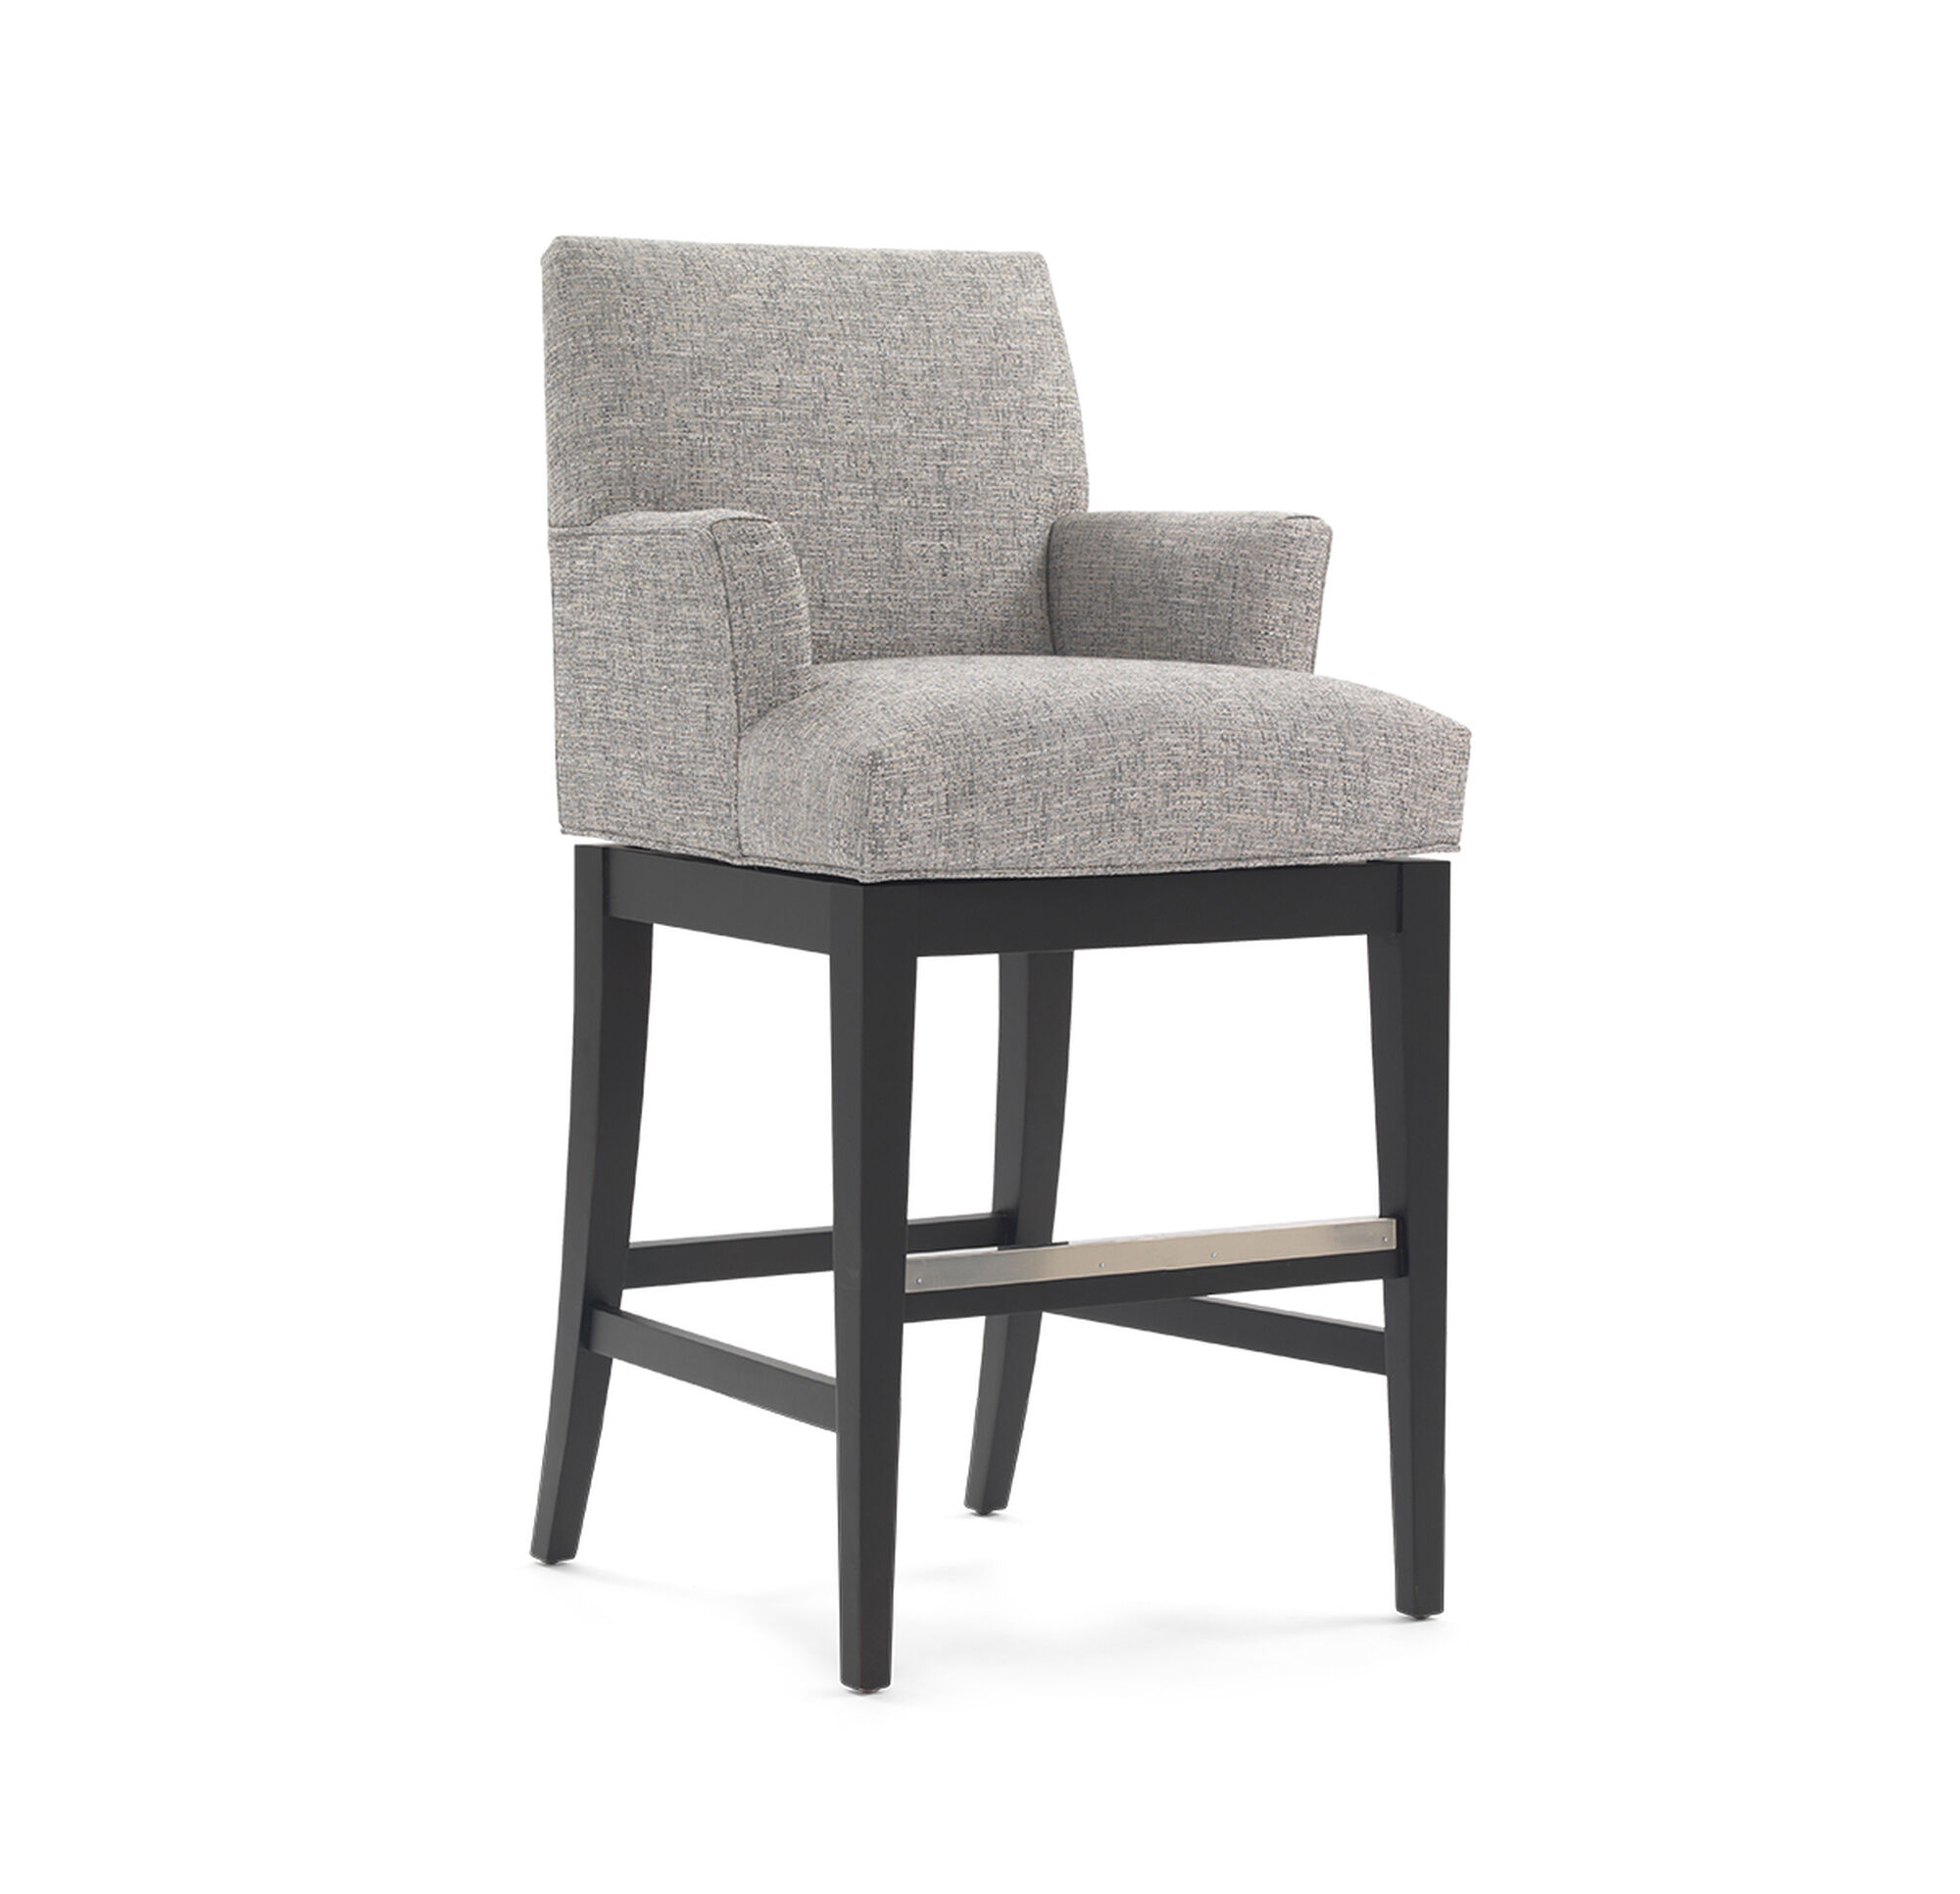 Anthony Return Swivel Bar Stool With Arms